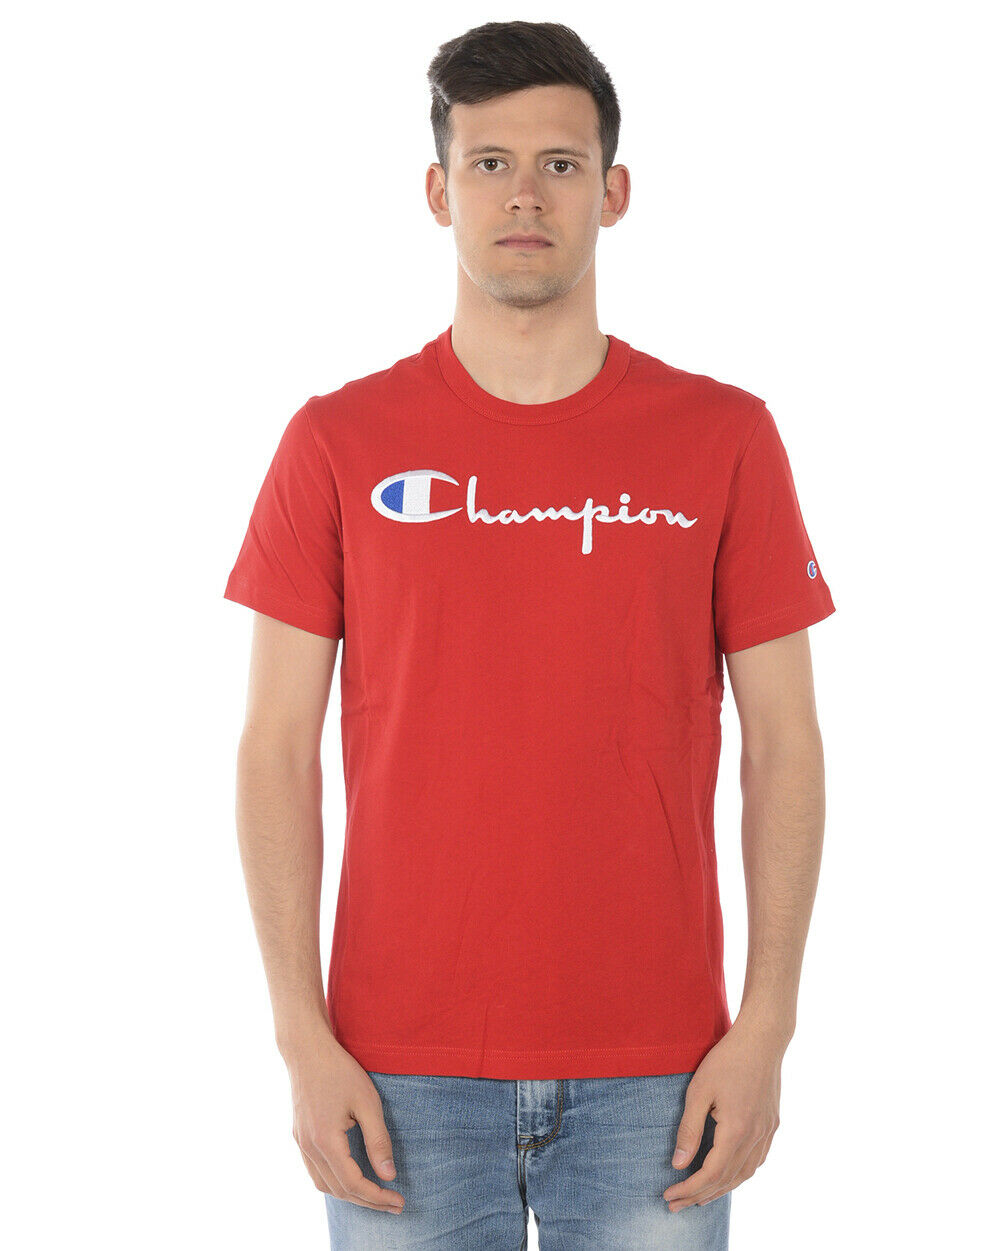 Champion T Shirt Sweatshirt Cotton Man rot 210972 RS053 Sz. L PUT OFFER